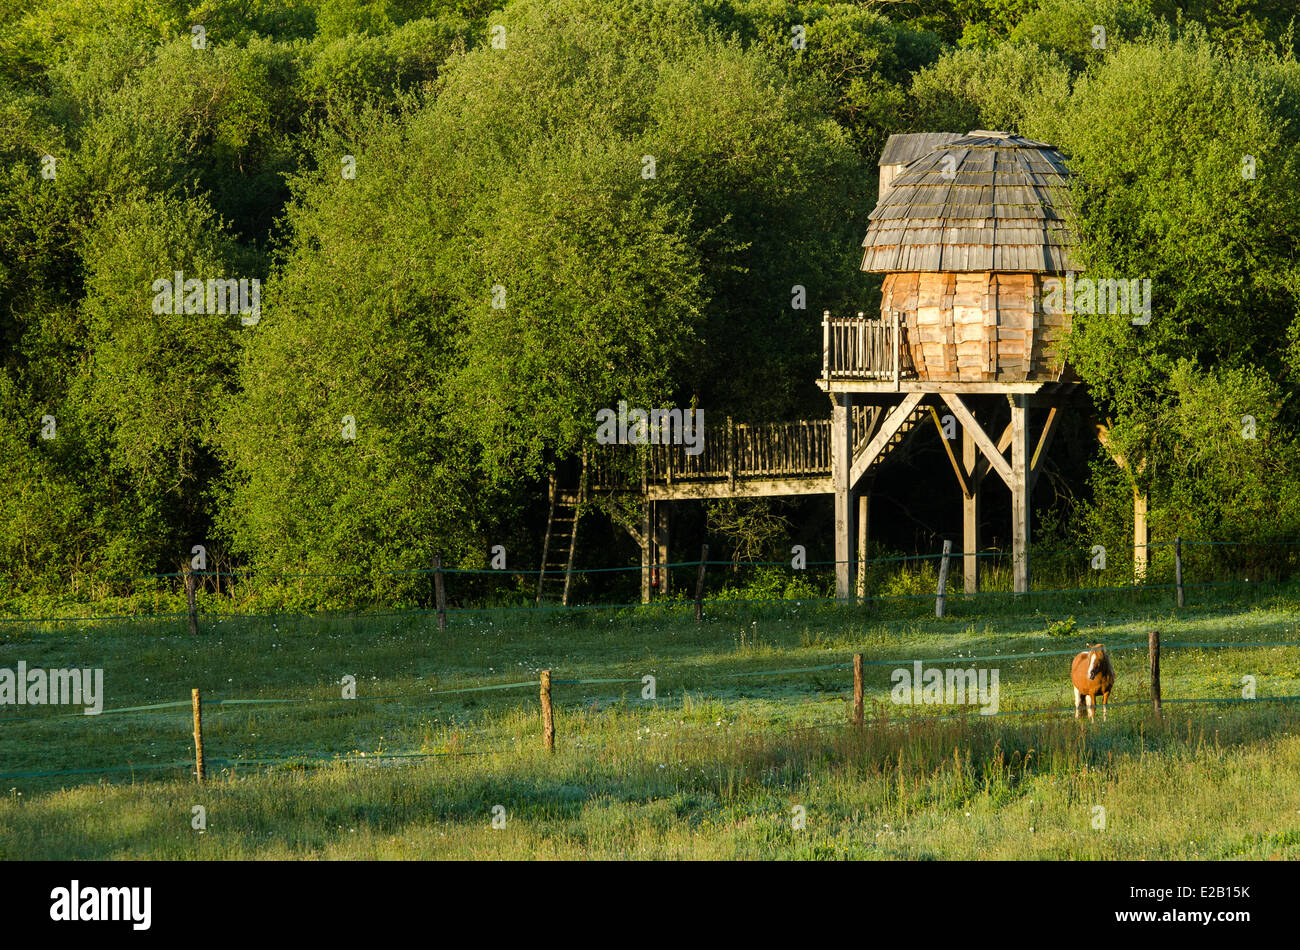 Cabanes De Bretagne Moustoir Ac ac wood stock photos & ac wood stock images - alamy